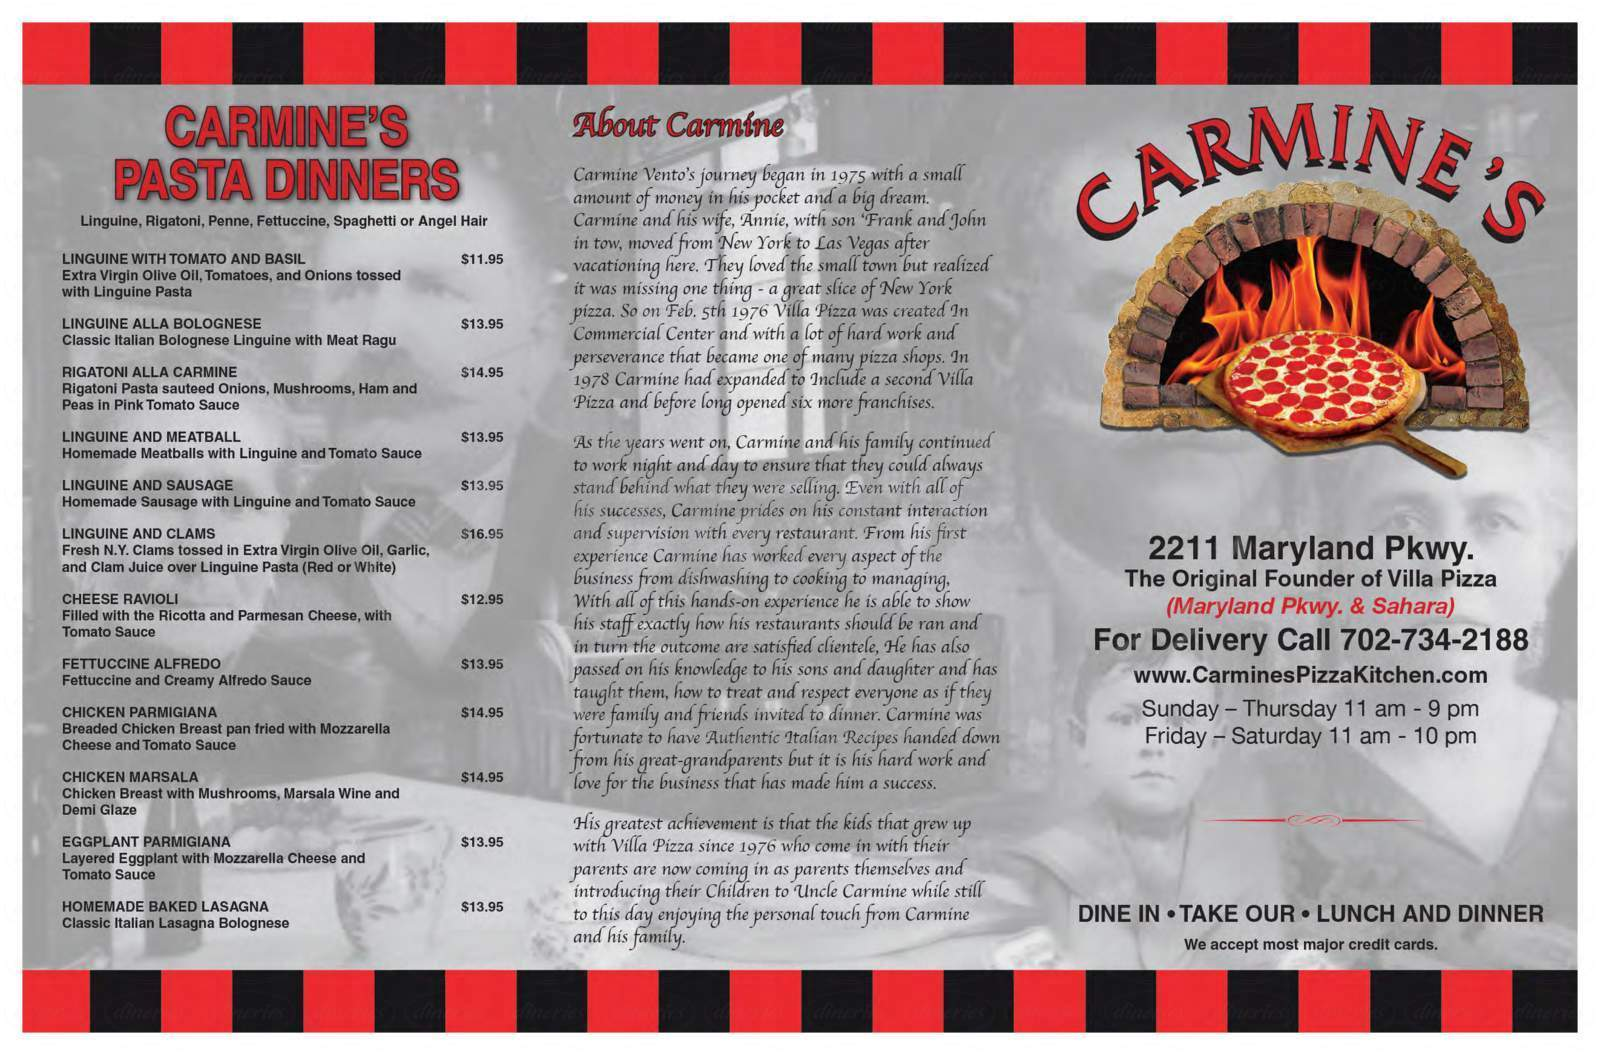 menu for Carmine's Pizza Kitchen